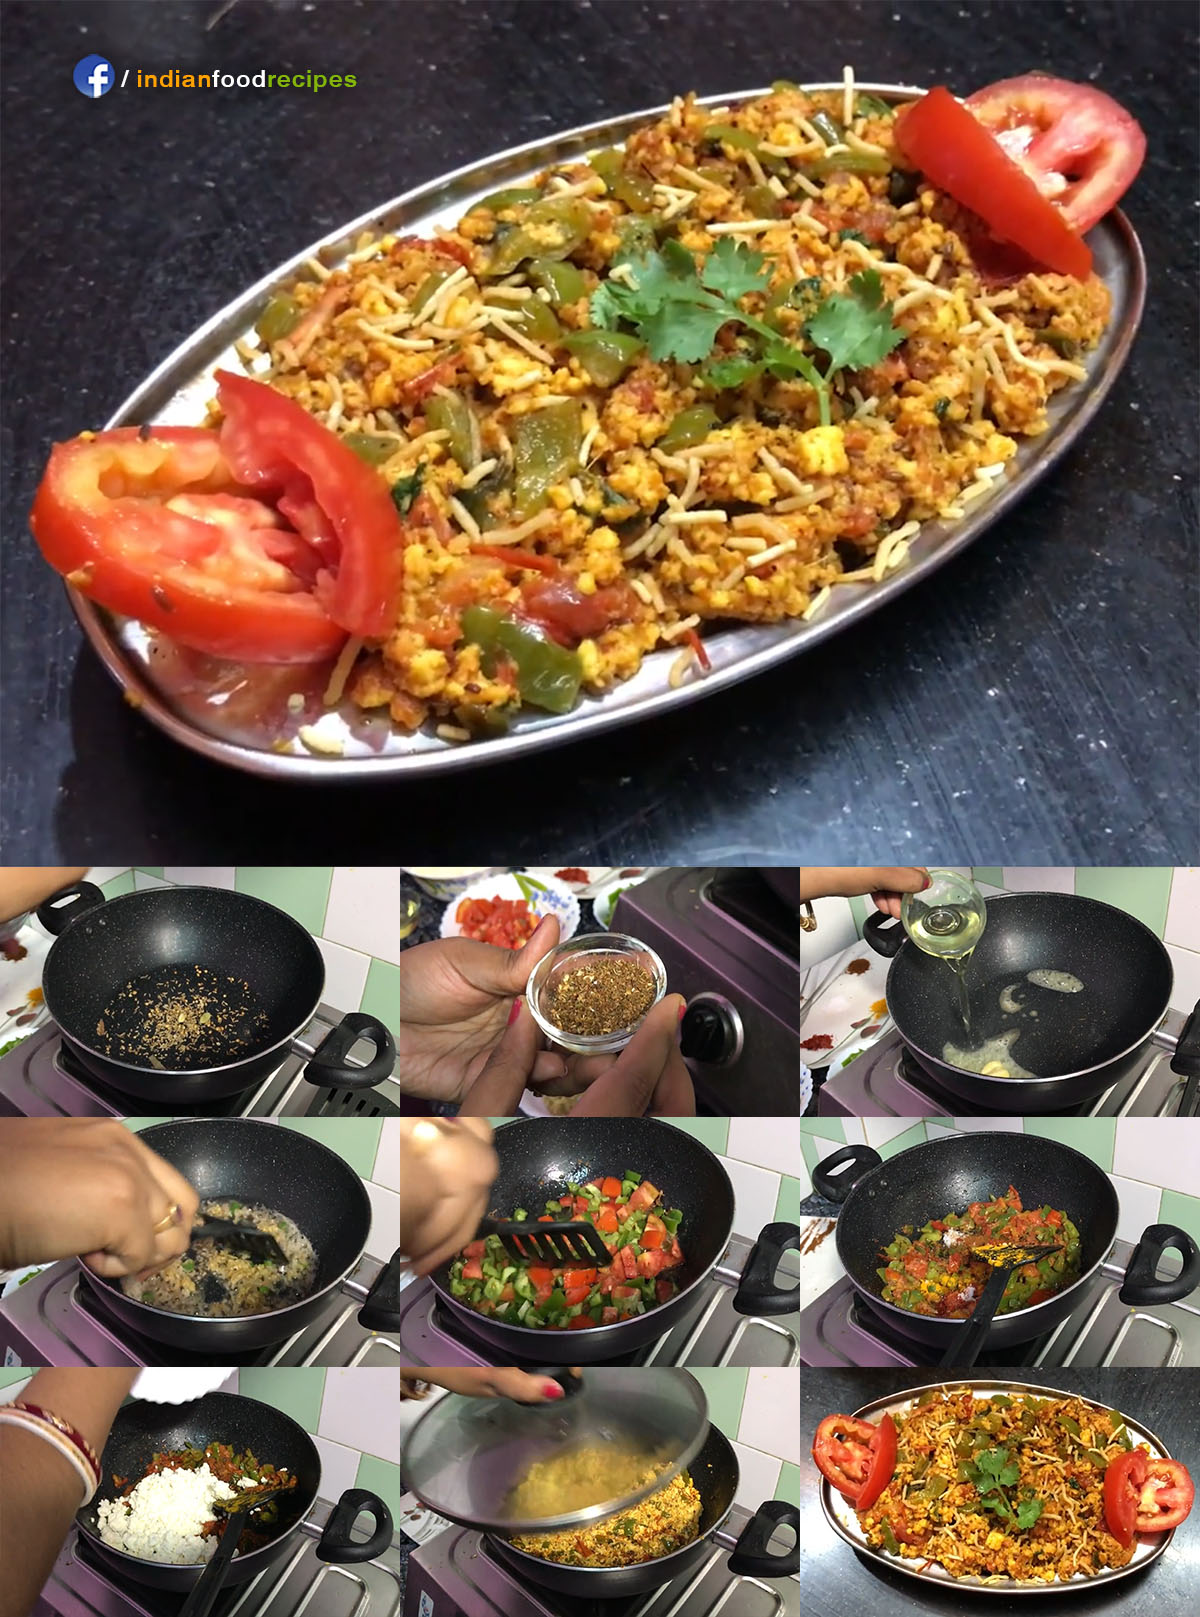 Paneer Bhurji / Scrambled Cottage Cheese recipe step by step